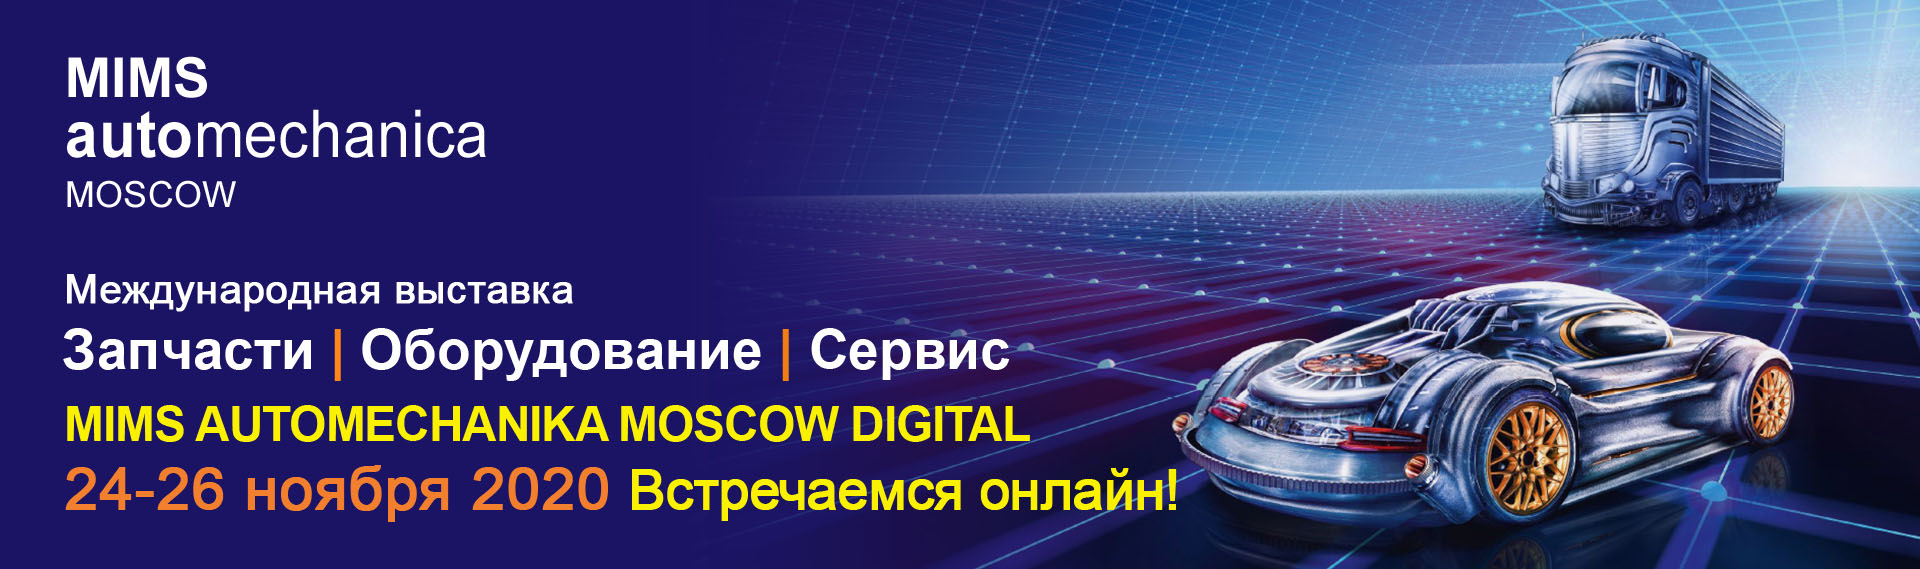 MIMS AUTOMECHANIKA MOSCOW DIGITAL 2020